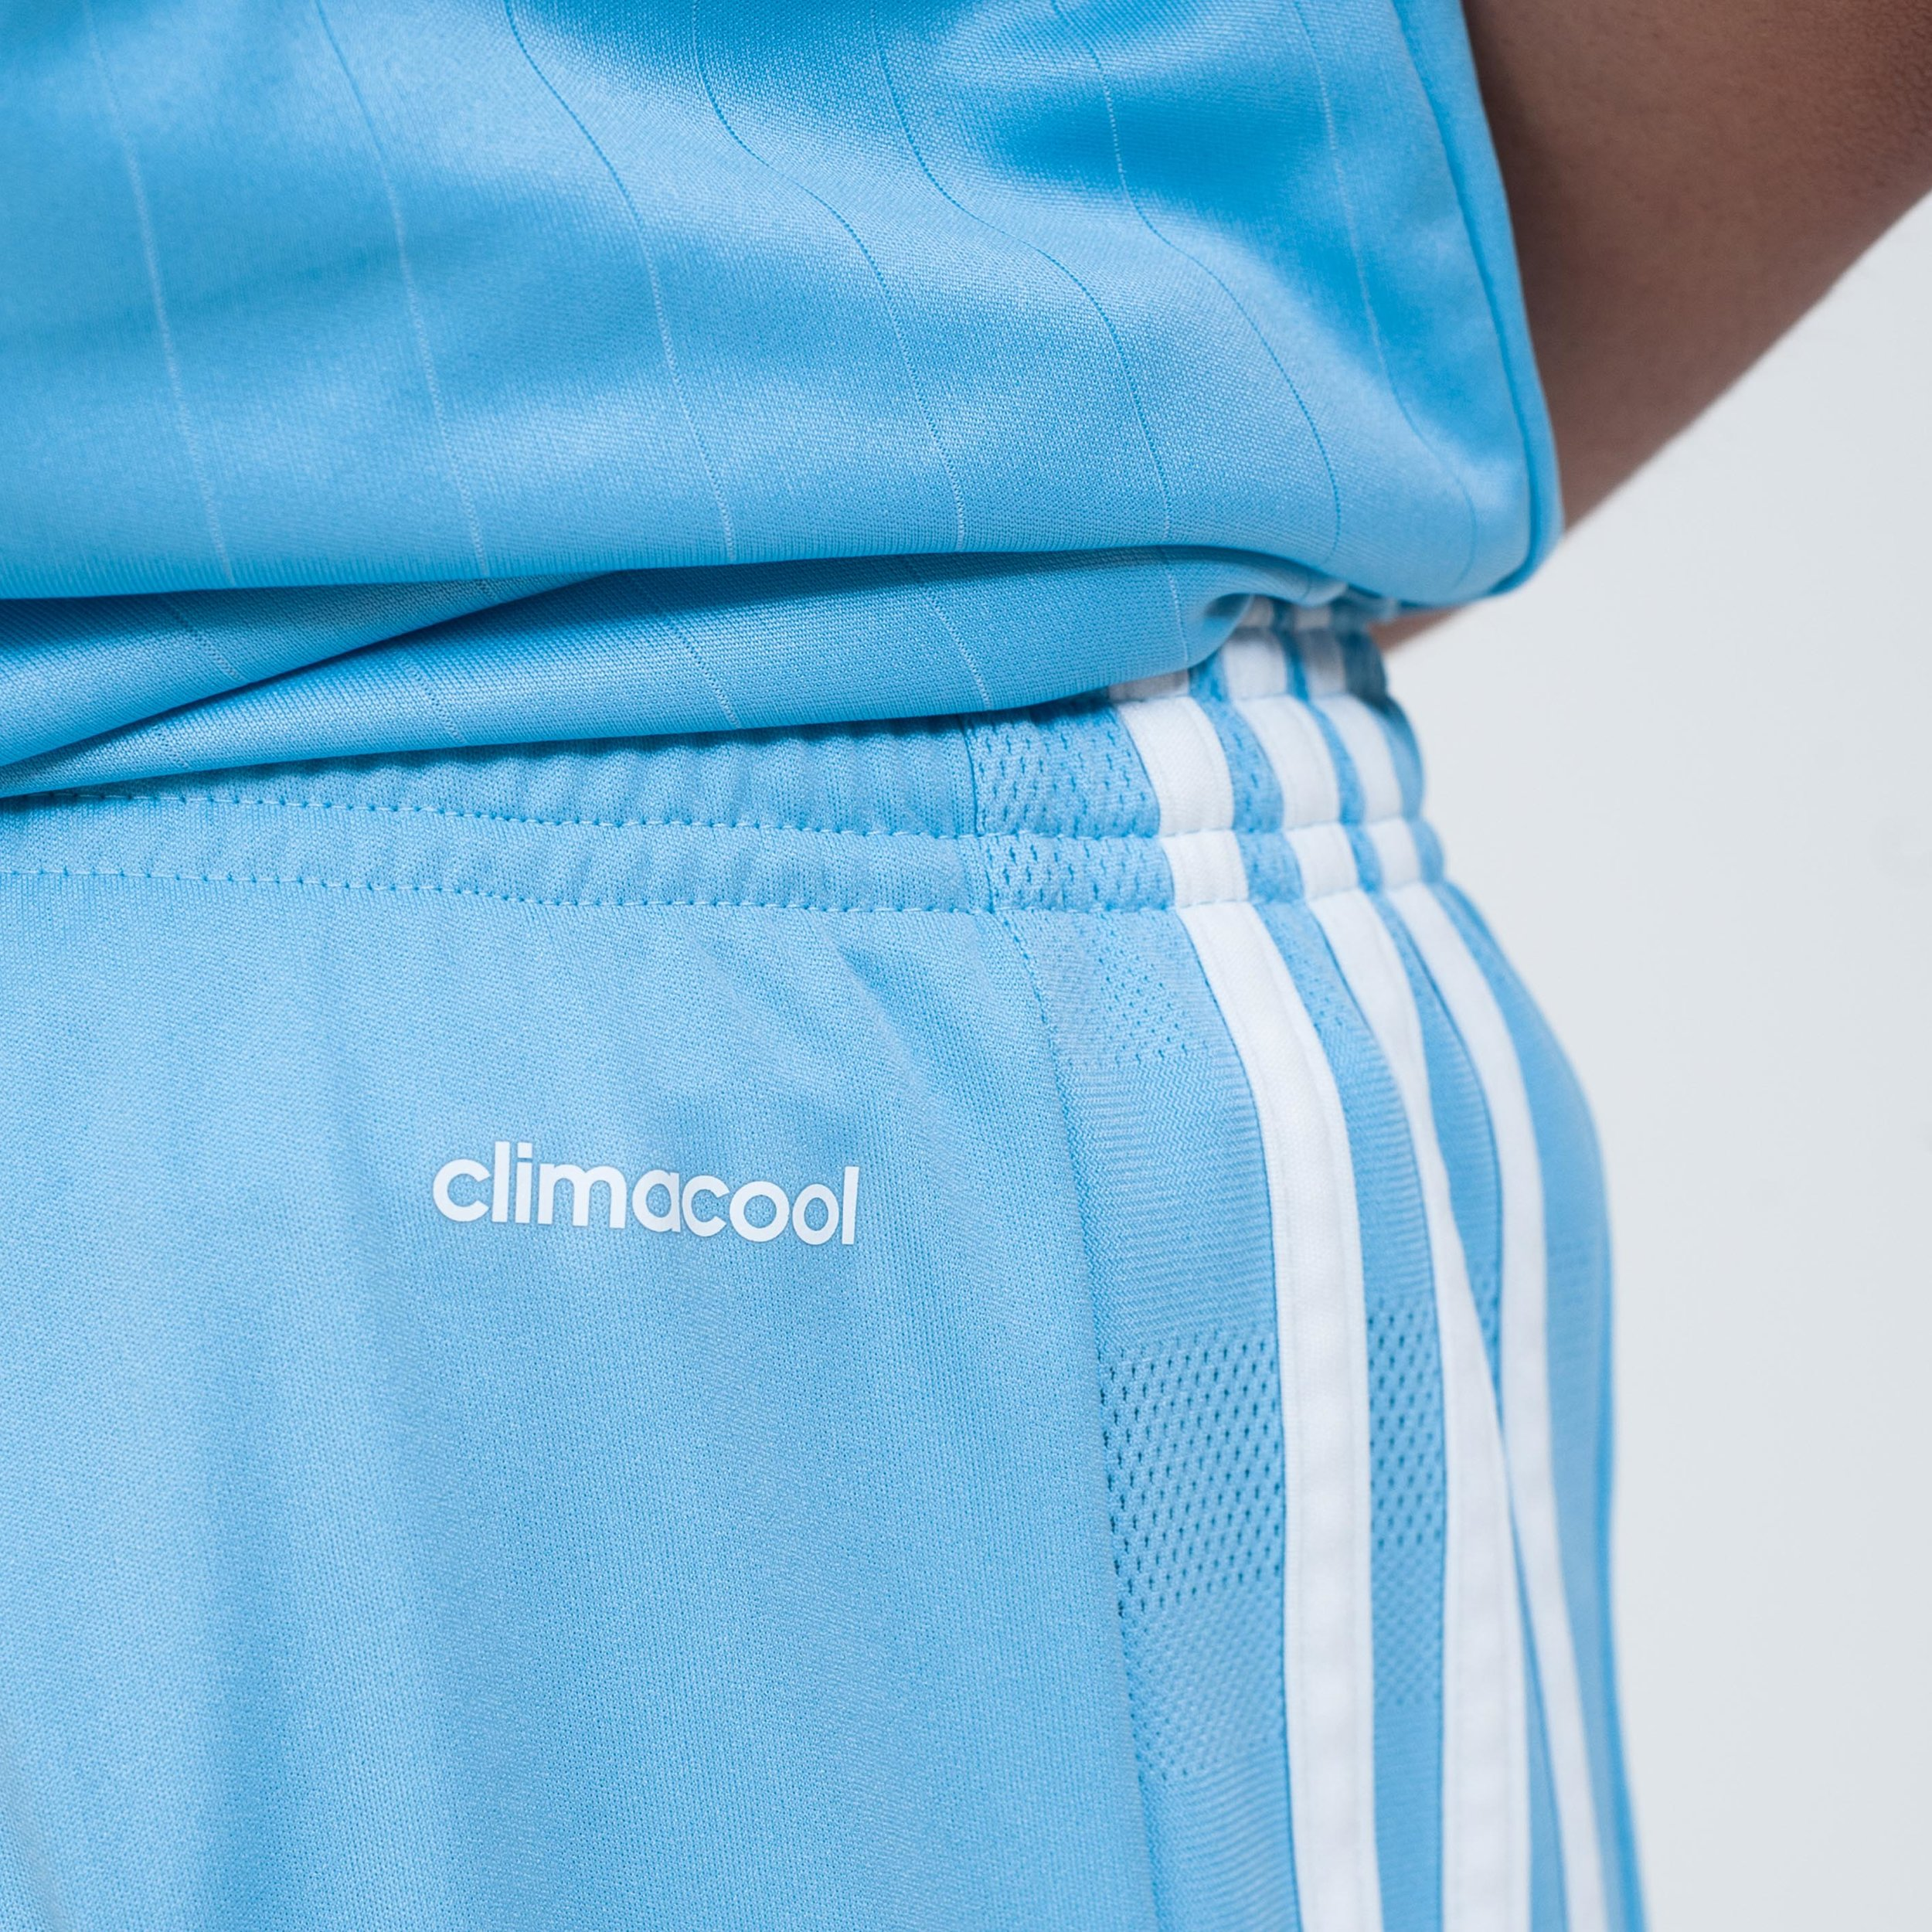 Pflugerville FC Select: Away (Climacool shorts)